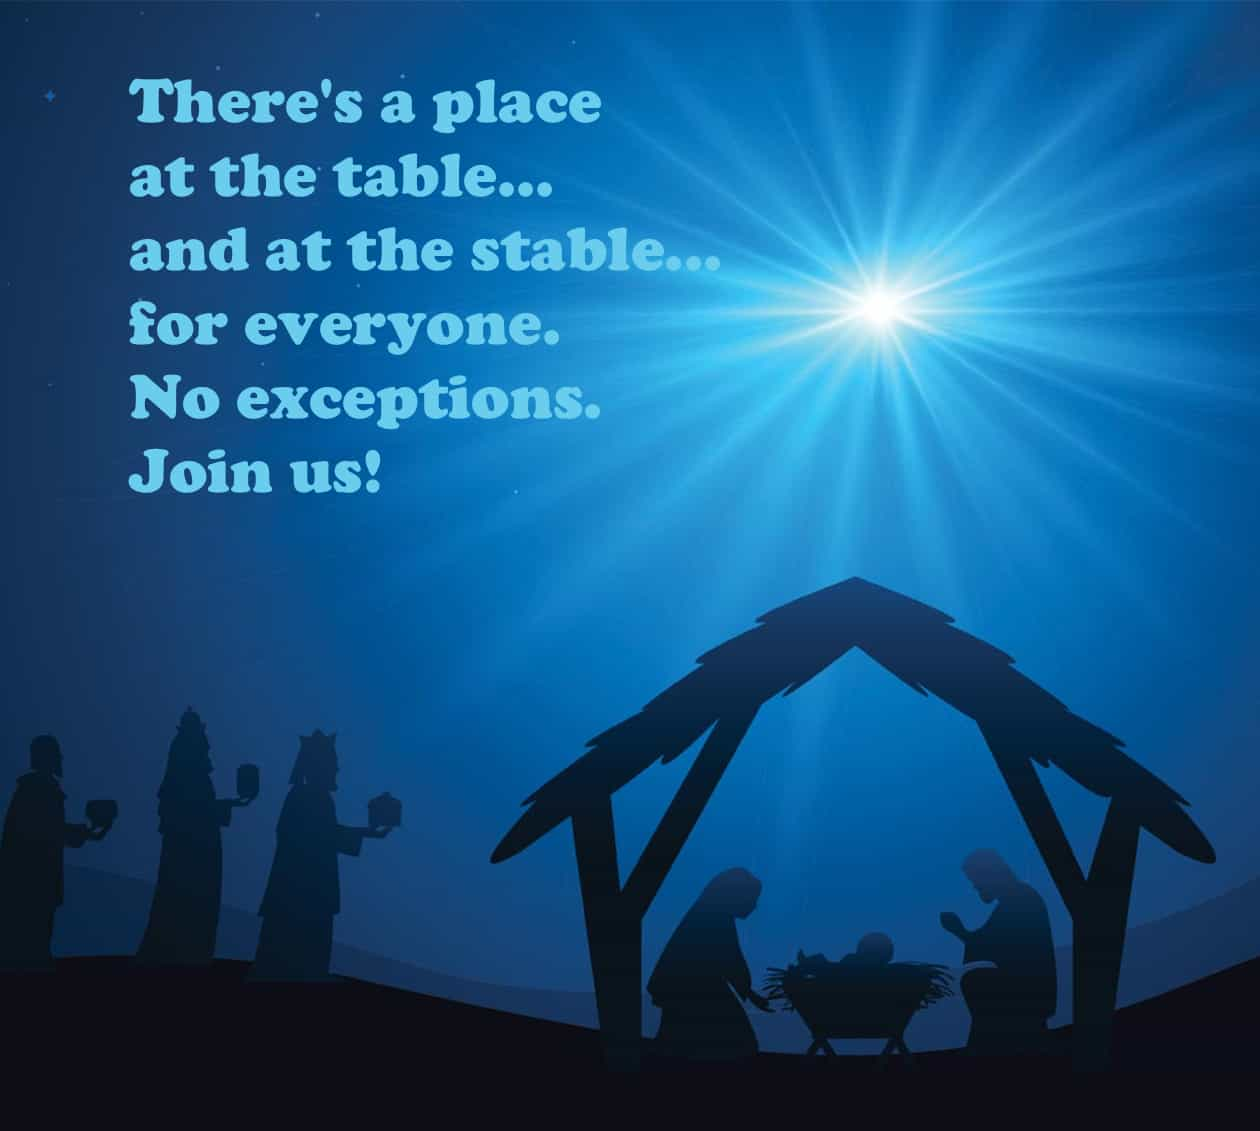 st marks episcopal church presents our second annual blue christmas and longest night service where we pause in the midst of advent and the days before - Blue Christmas Service